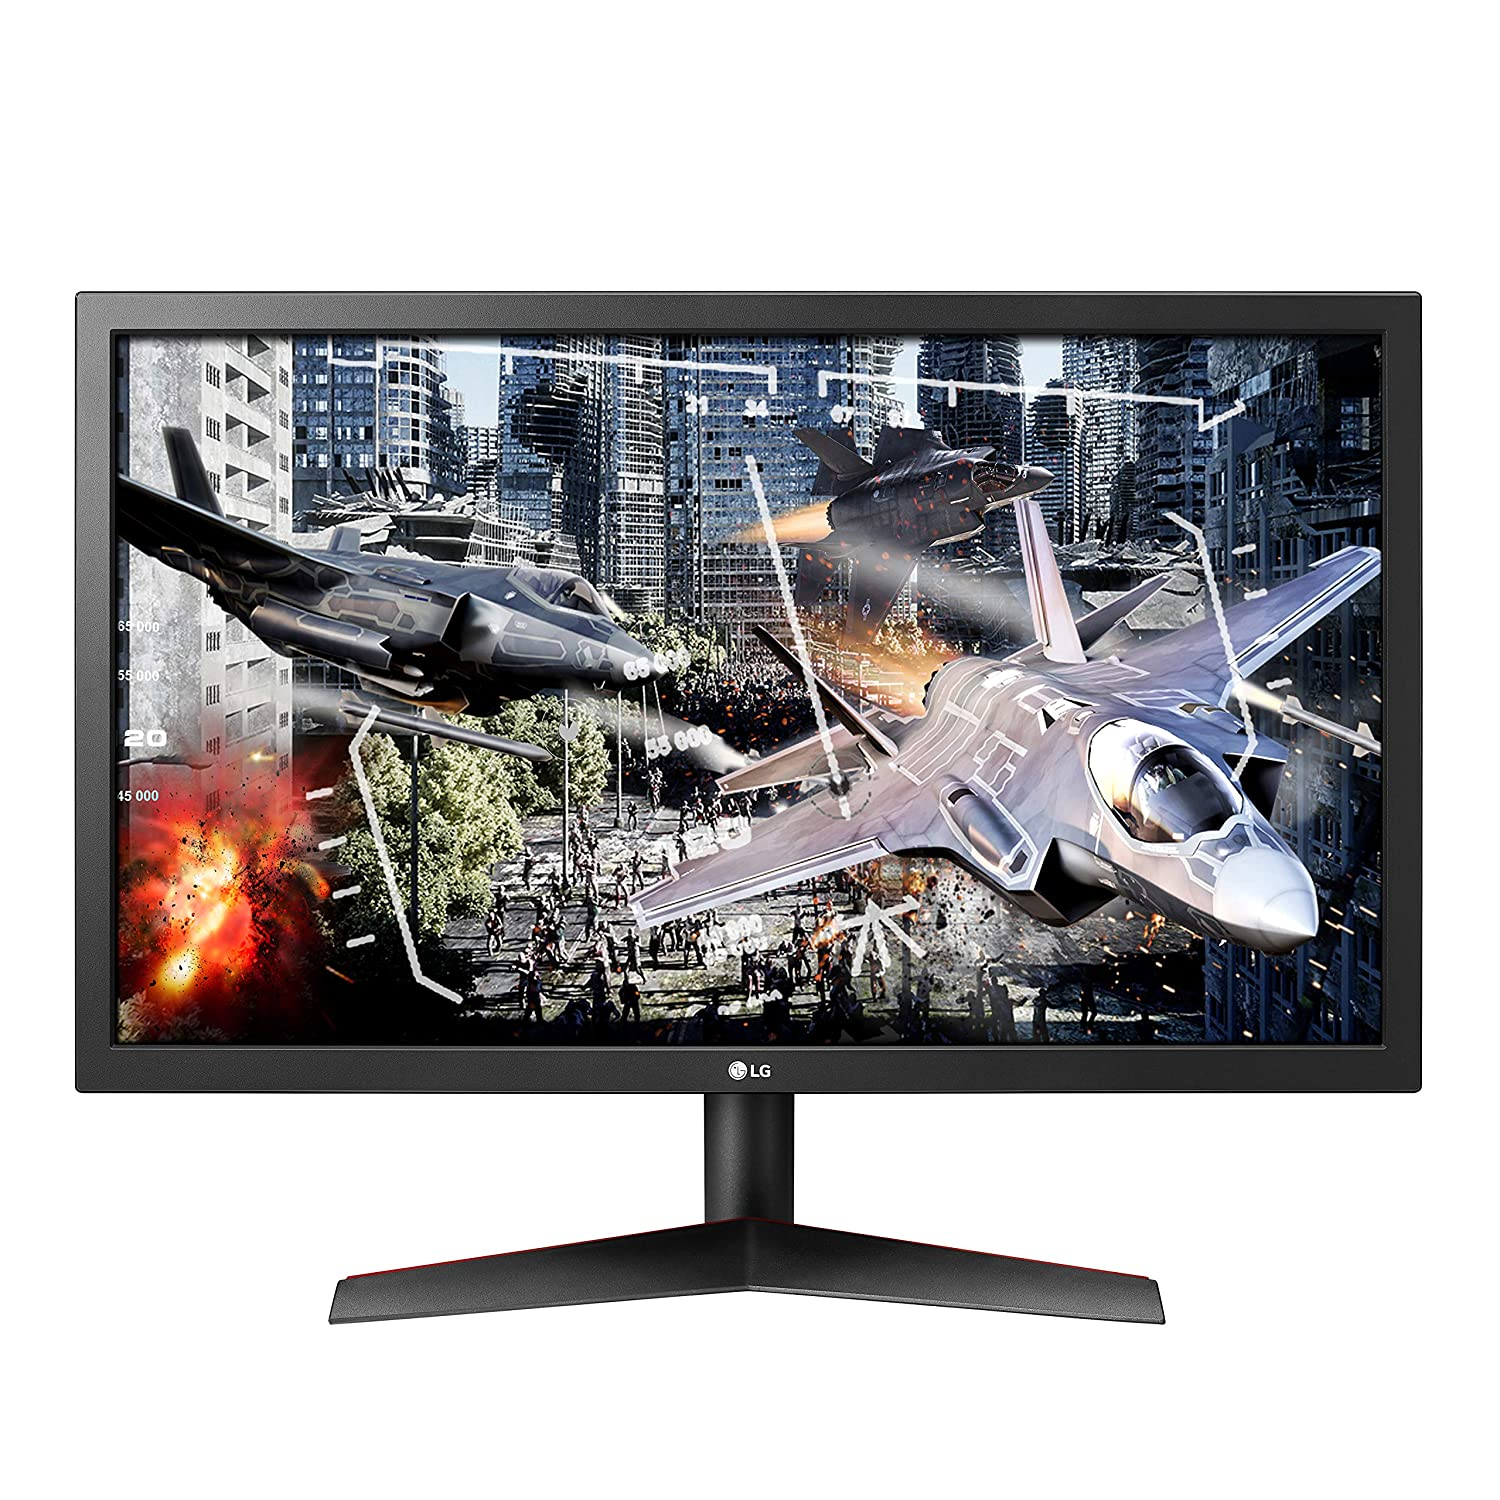 LG Ultragear 24GL600F-B 24 Inch Full HD Gaming Monitor with Radeon FreeSync Technology, 144Hz Refresh Rate, 1ms Response Time 2019 – Black